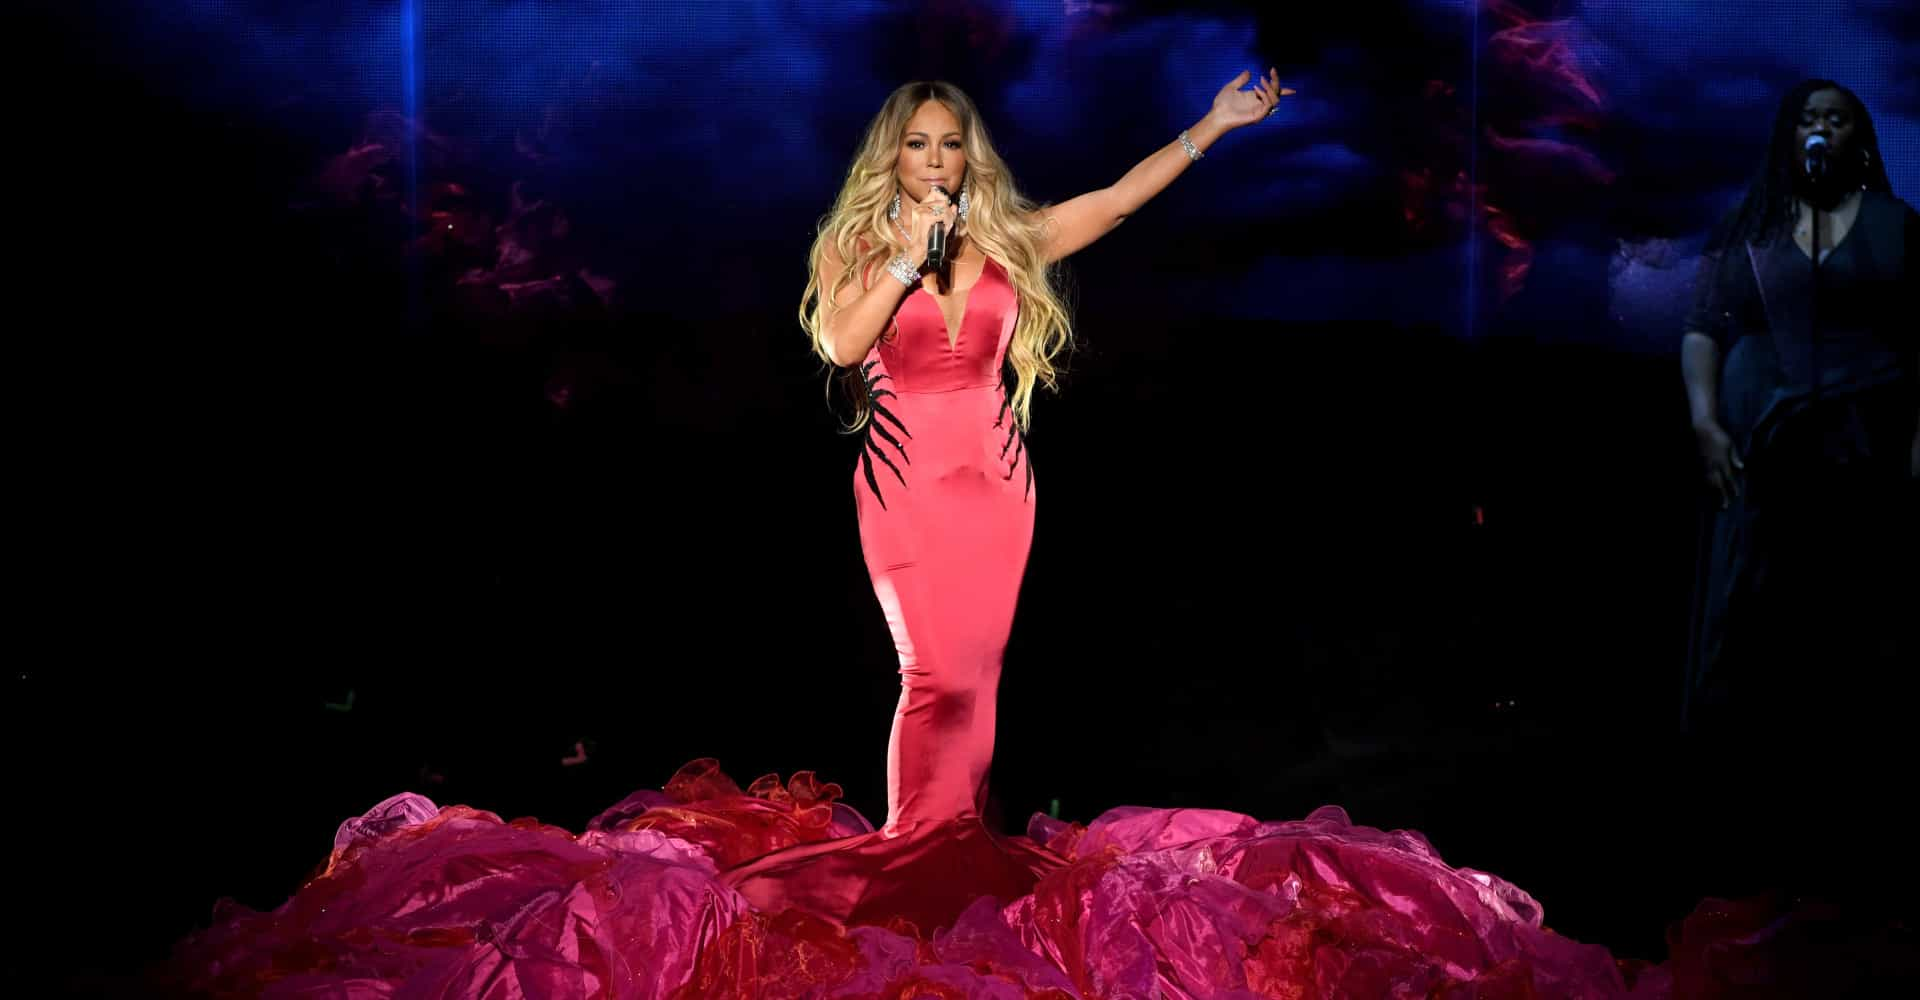 Did Mariah Carey lip-sync her AMAs performance? Check out the viral fan theories